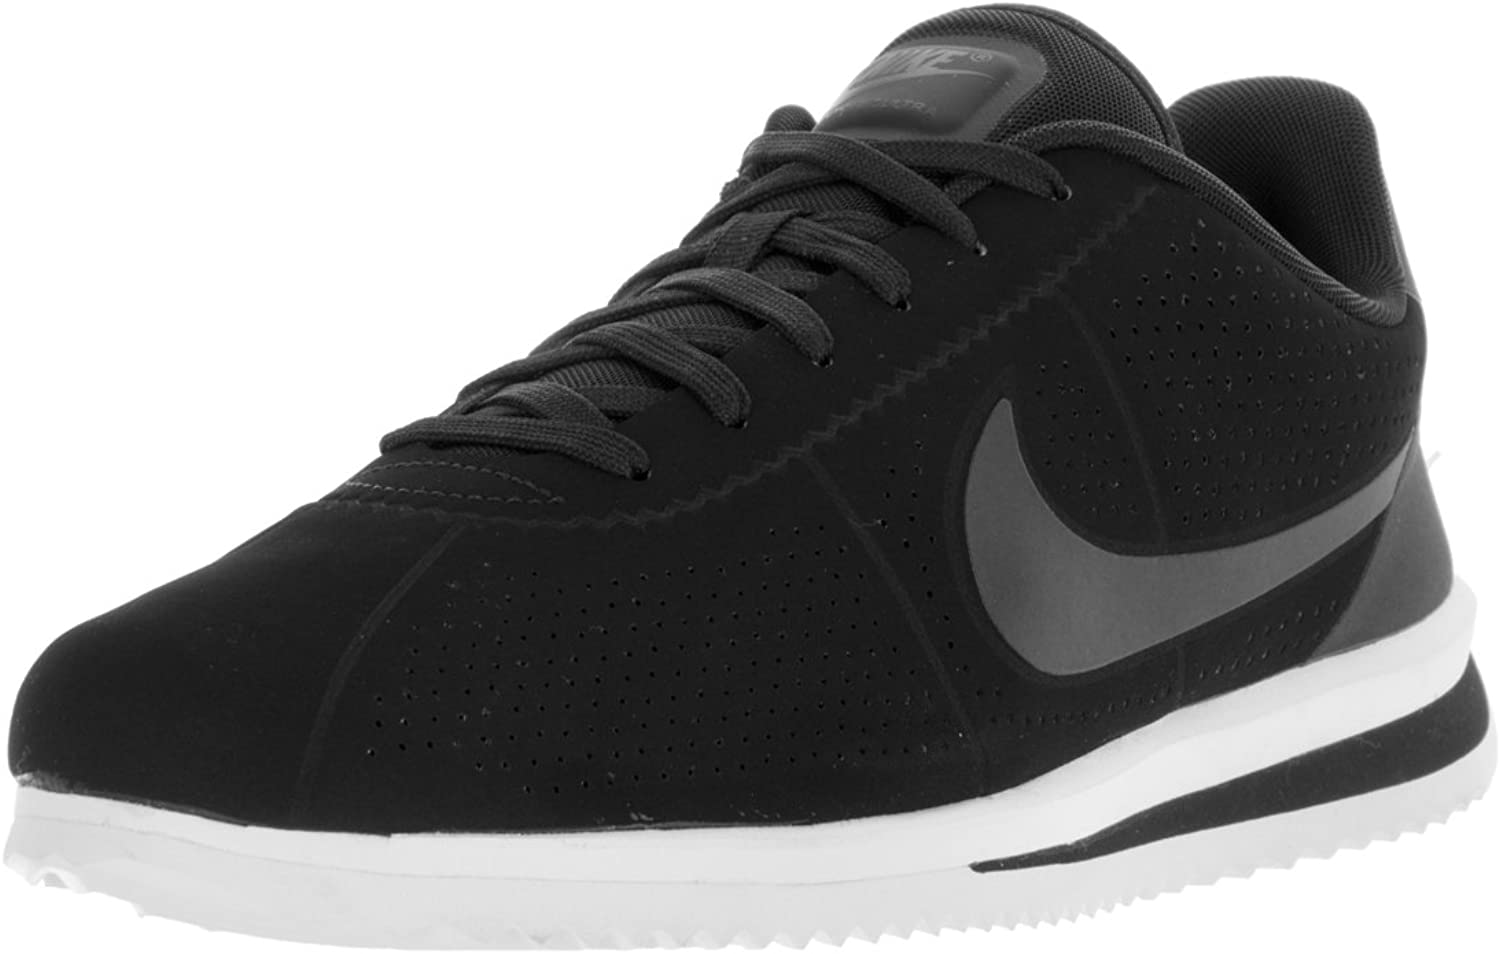 Nike Men's Cortez Ultra Moire Competition Running shoes